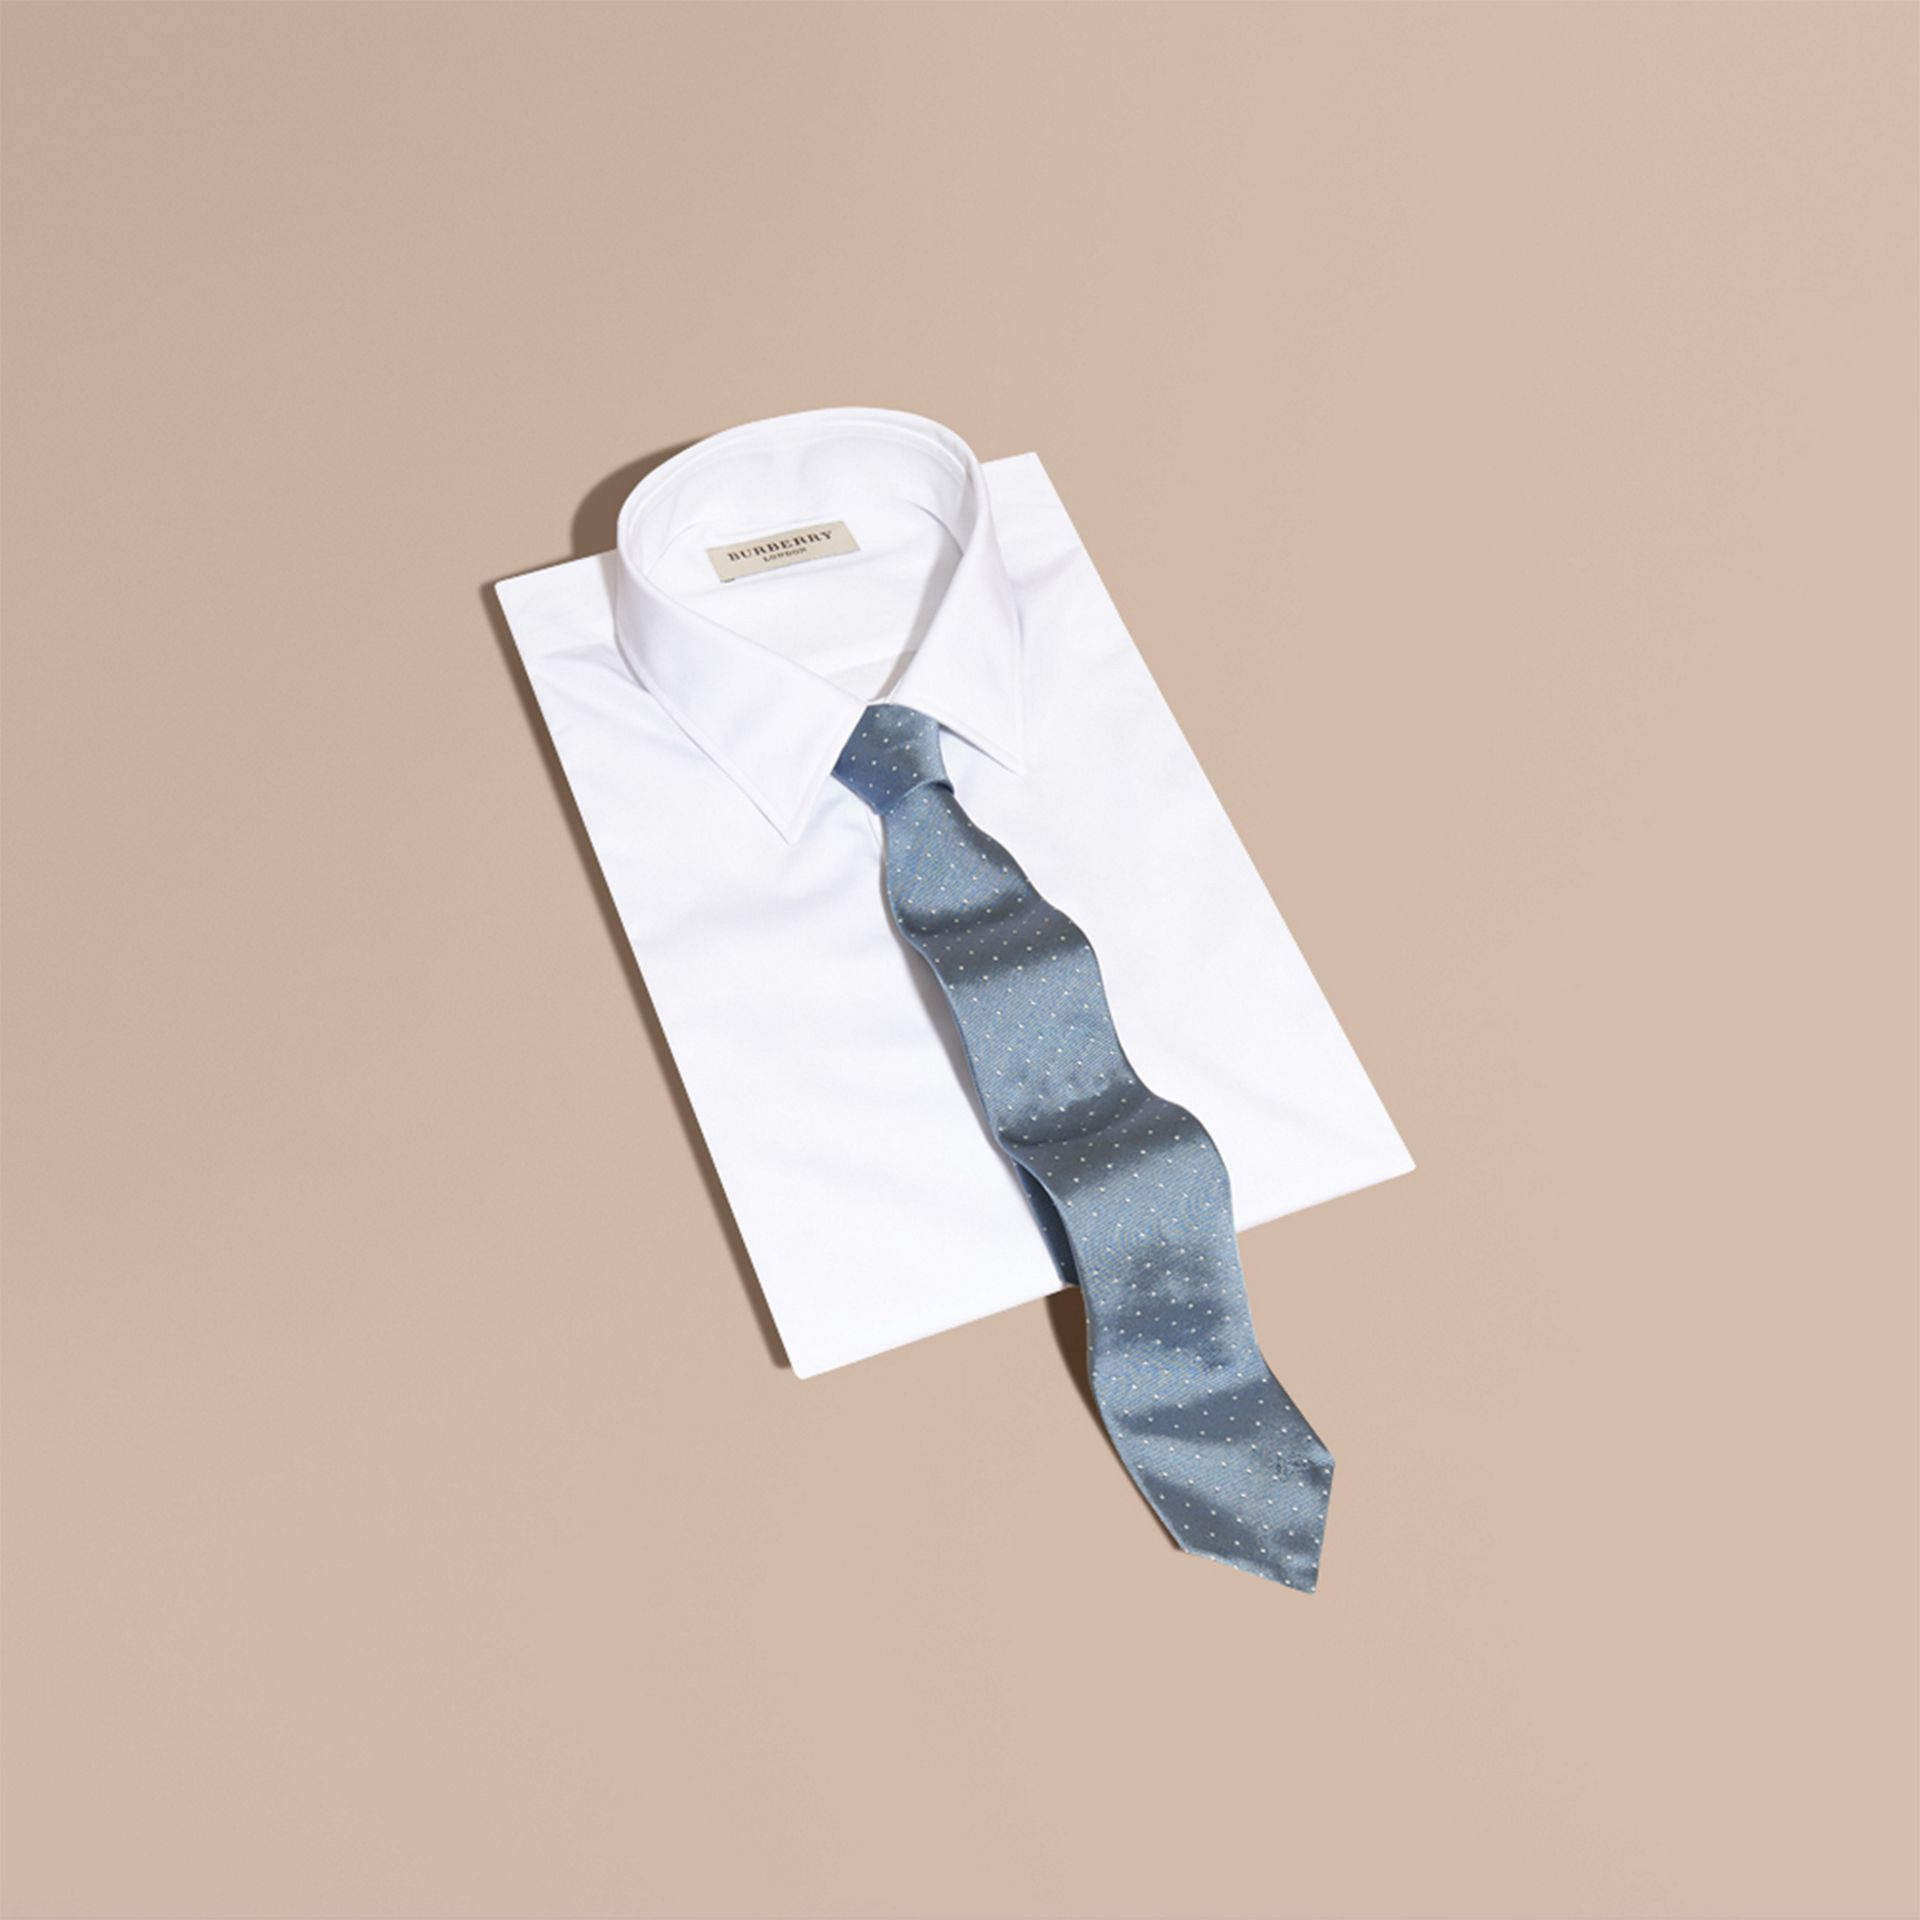 Modern Cut Polka-dot Silk Tie in Light Blue - Men | Burberry United Kingdom - gallery image 4